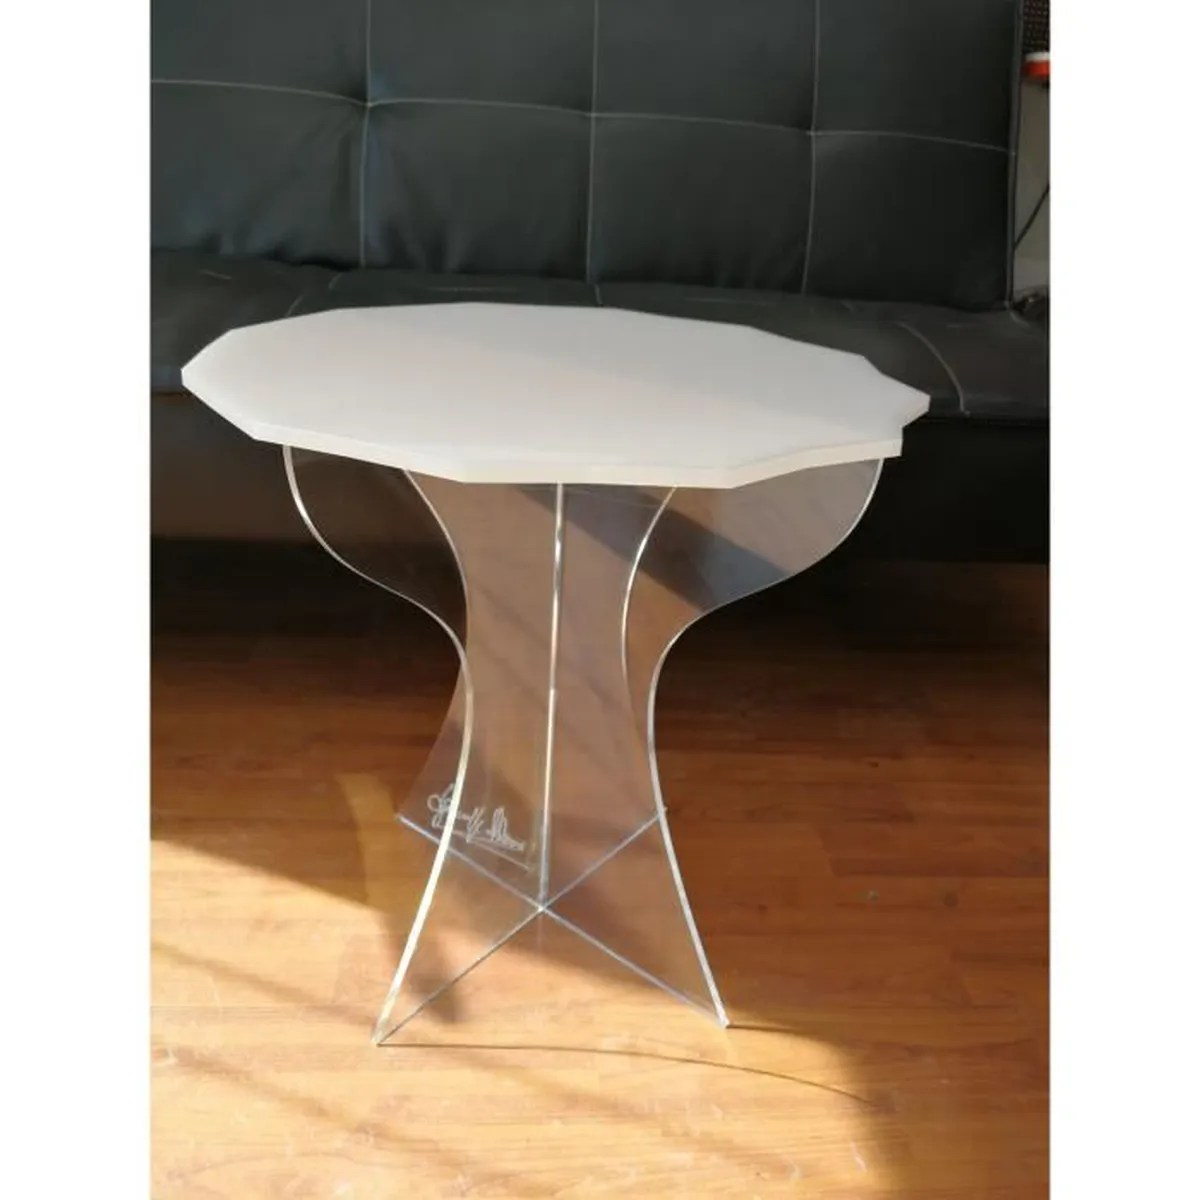 Table Transparente Plexiglass Table Basse Effett Verre Acrylique Transparent Table Basse Plexiglass Table Moderne De Sejour Salon